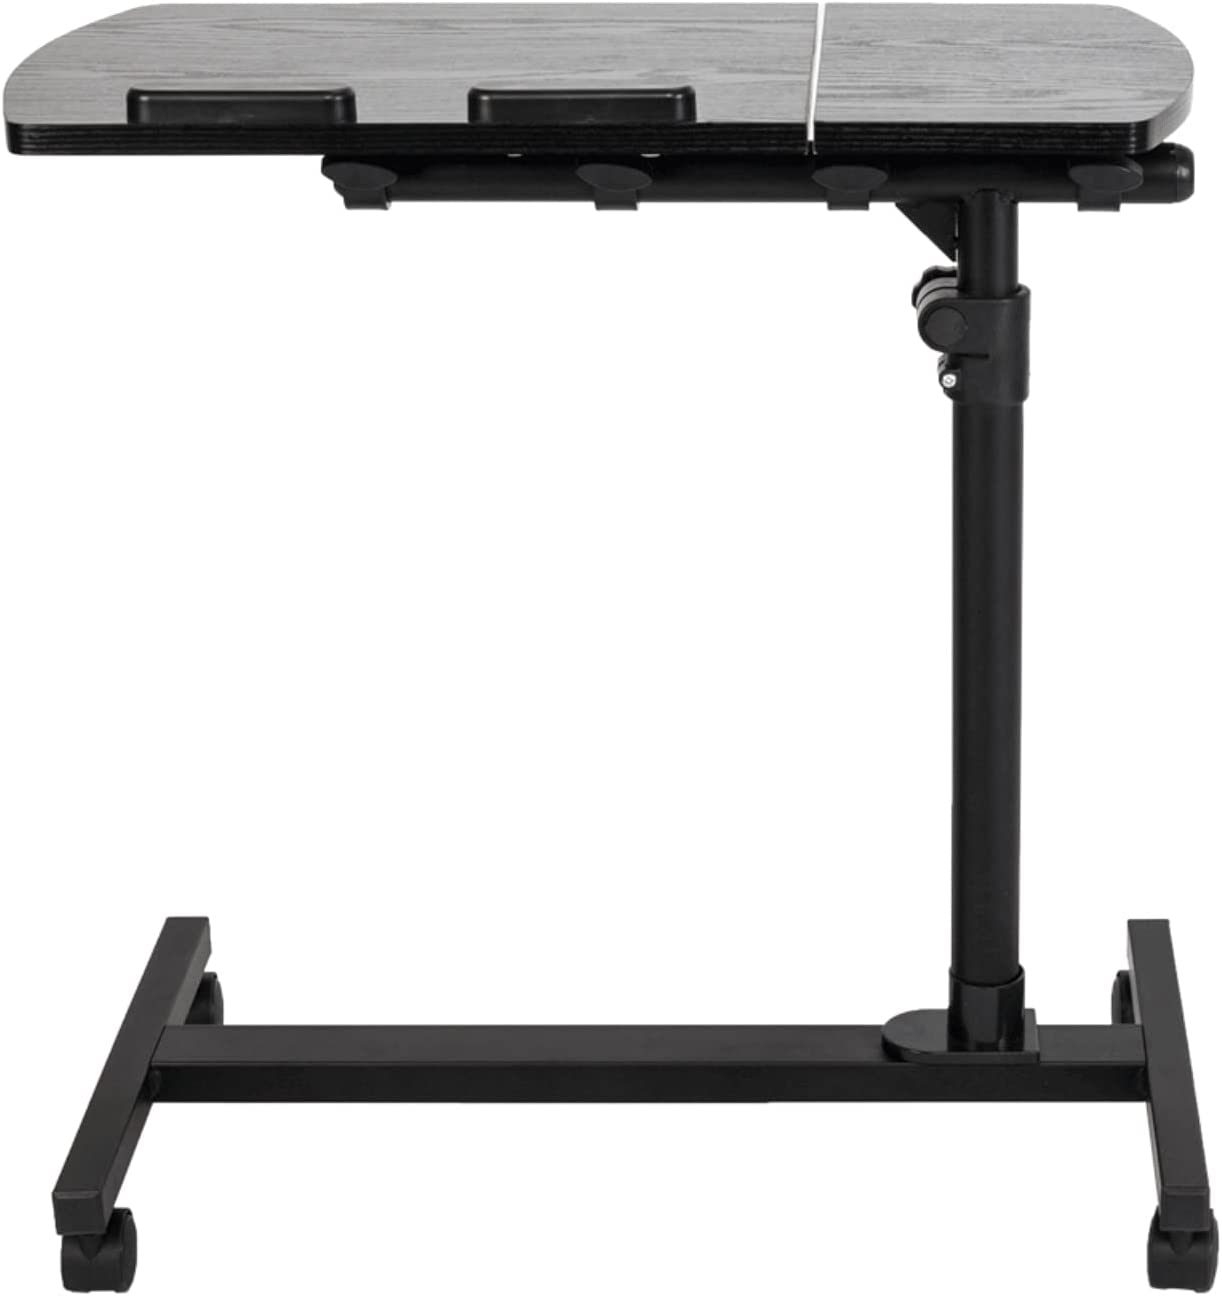 Bedside Table Max 63% OFF Rollable Four-Wheel We OFFer at cheap prices Laptop Tilting Stand Tray Tabl